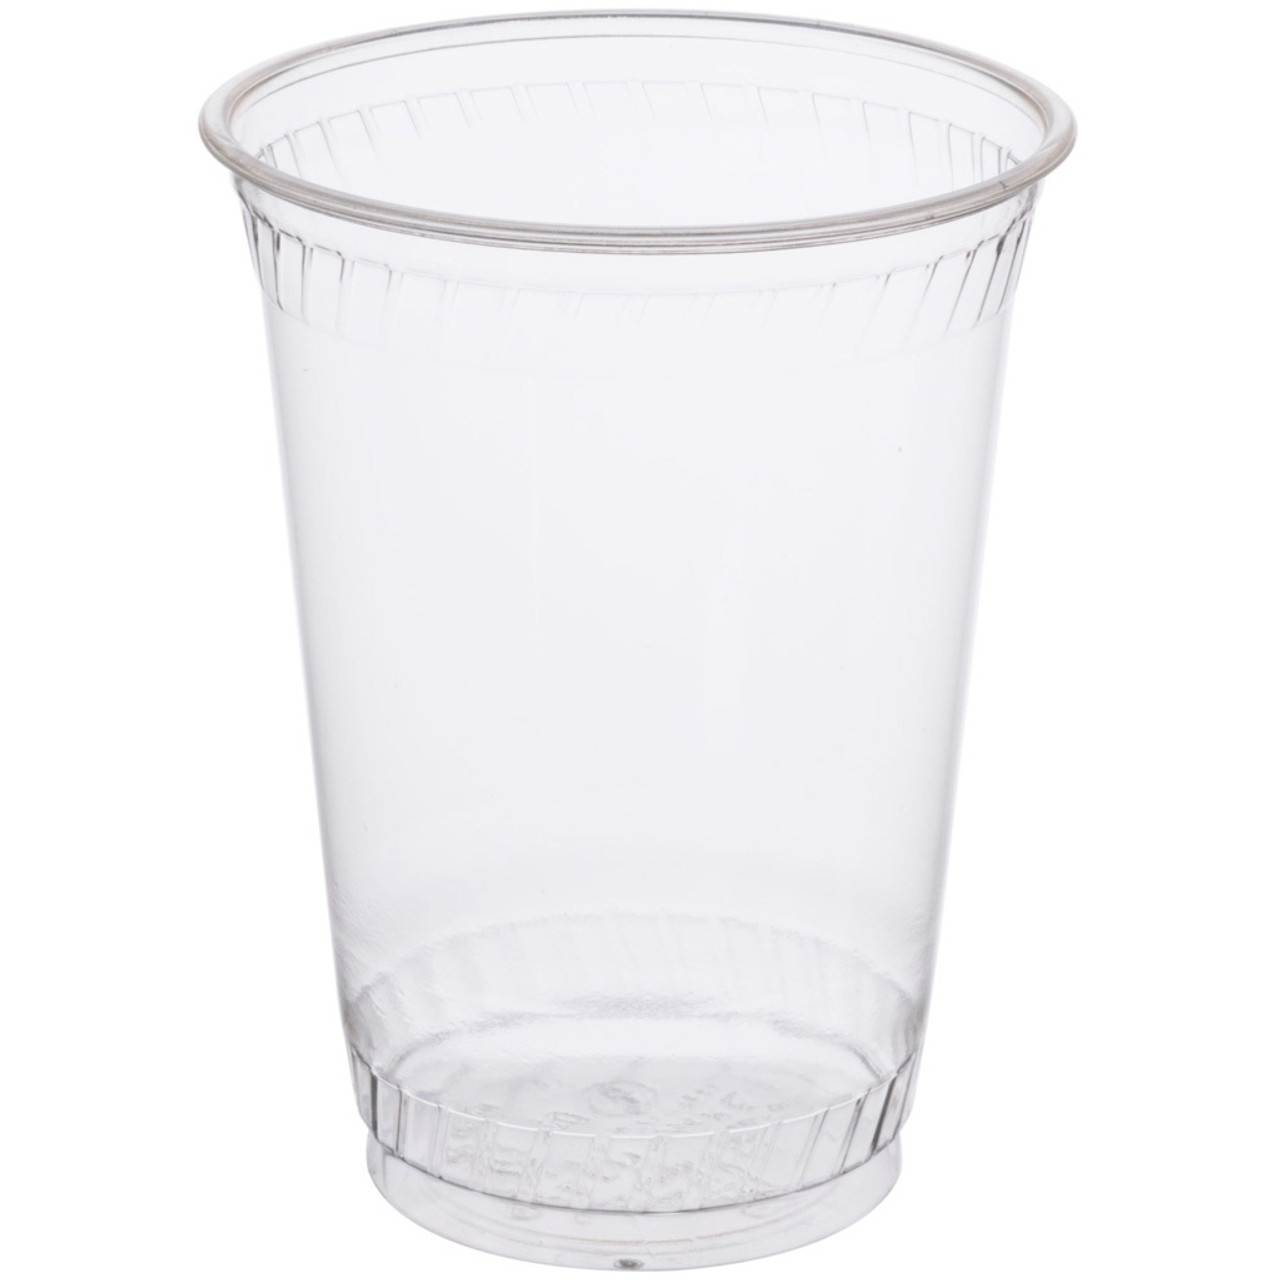 Cold Cups - Greenware - No Printing - 20oz